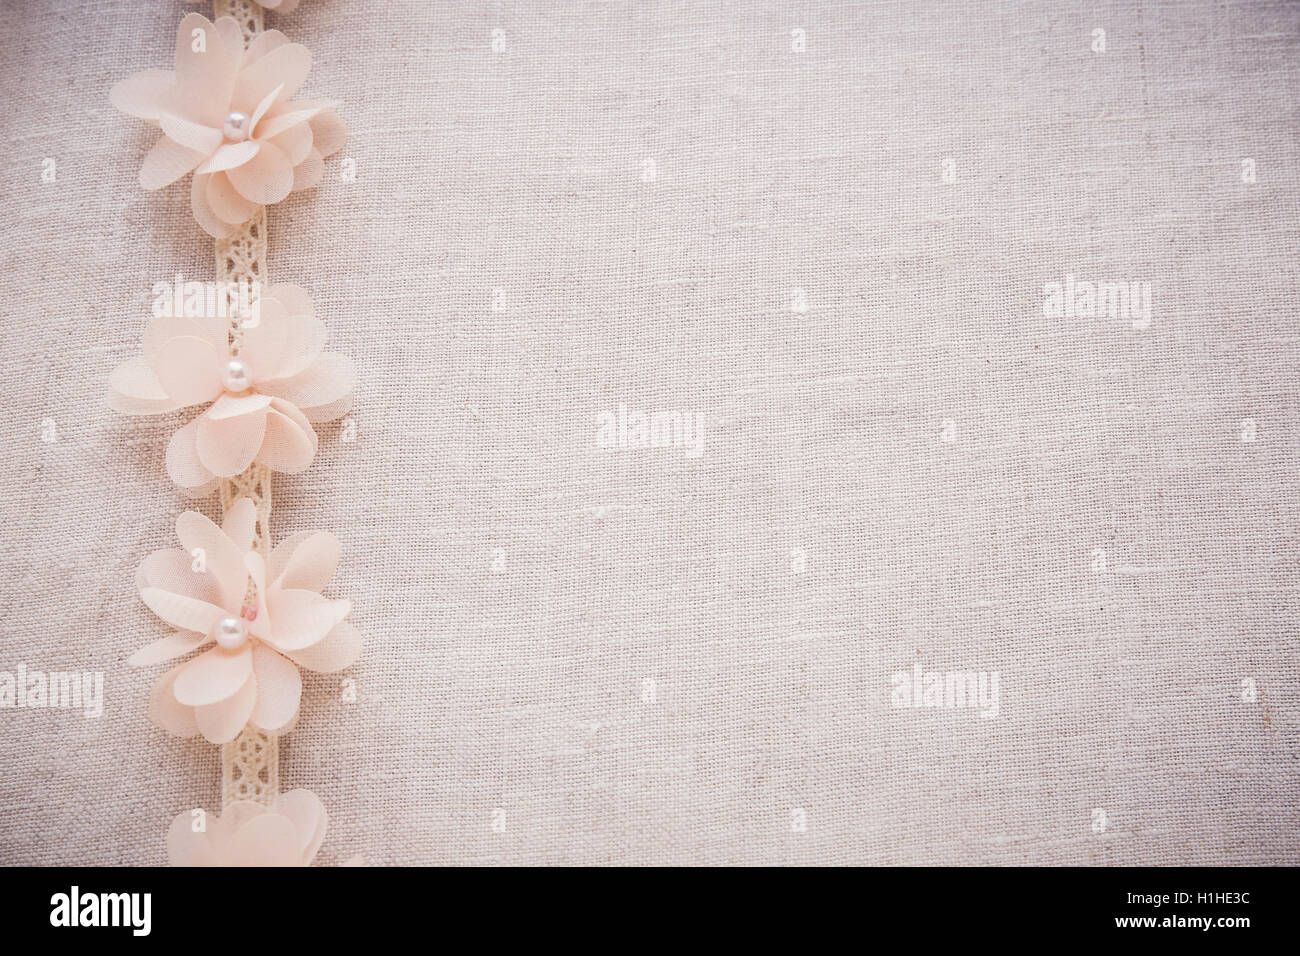 Flowers And Lace On Linen Copy Space Toning Vintage Wedding Background